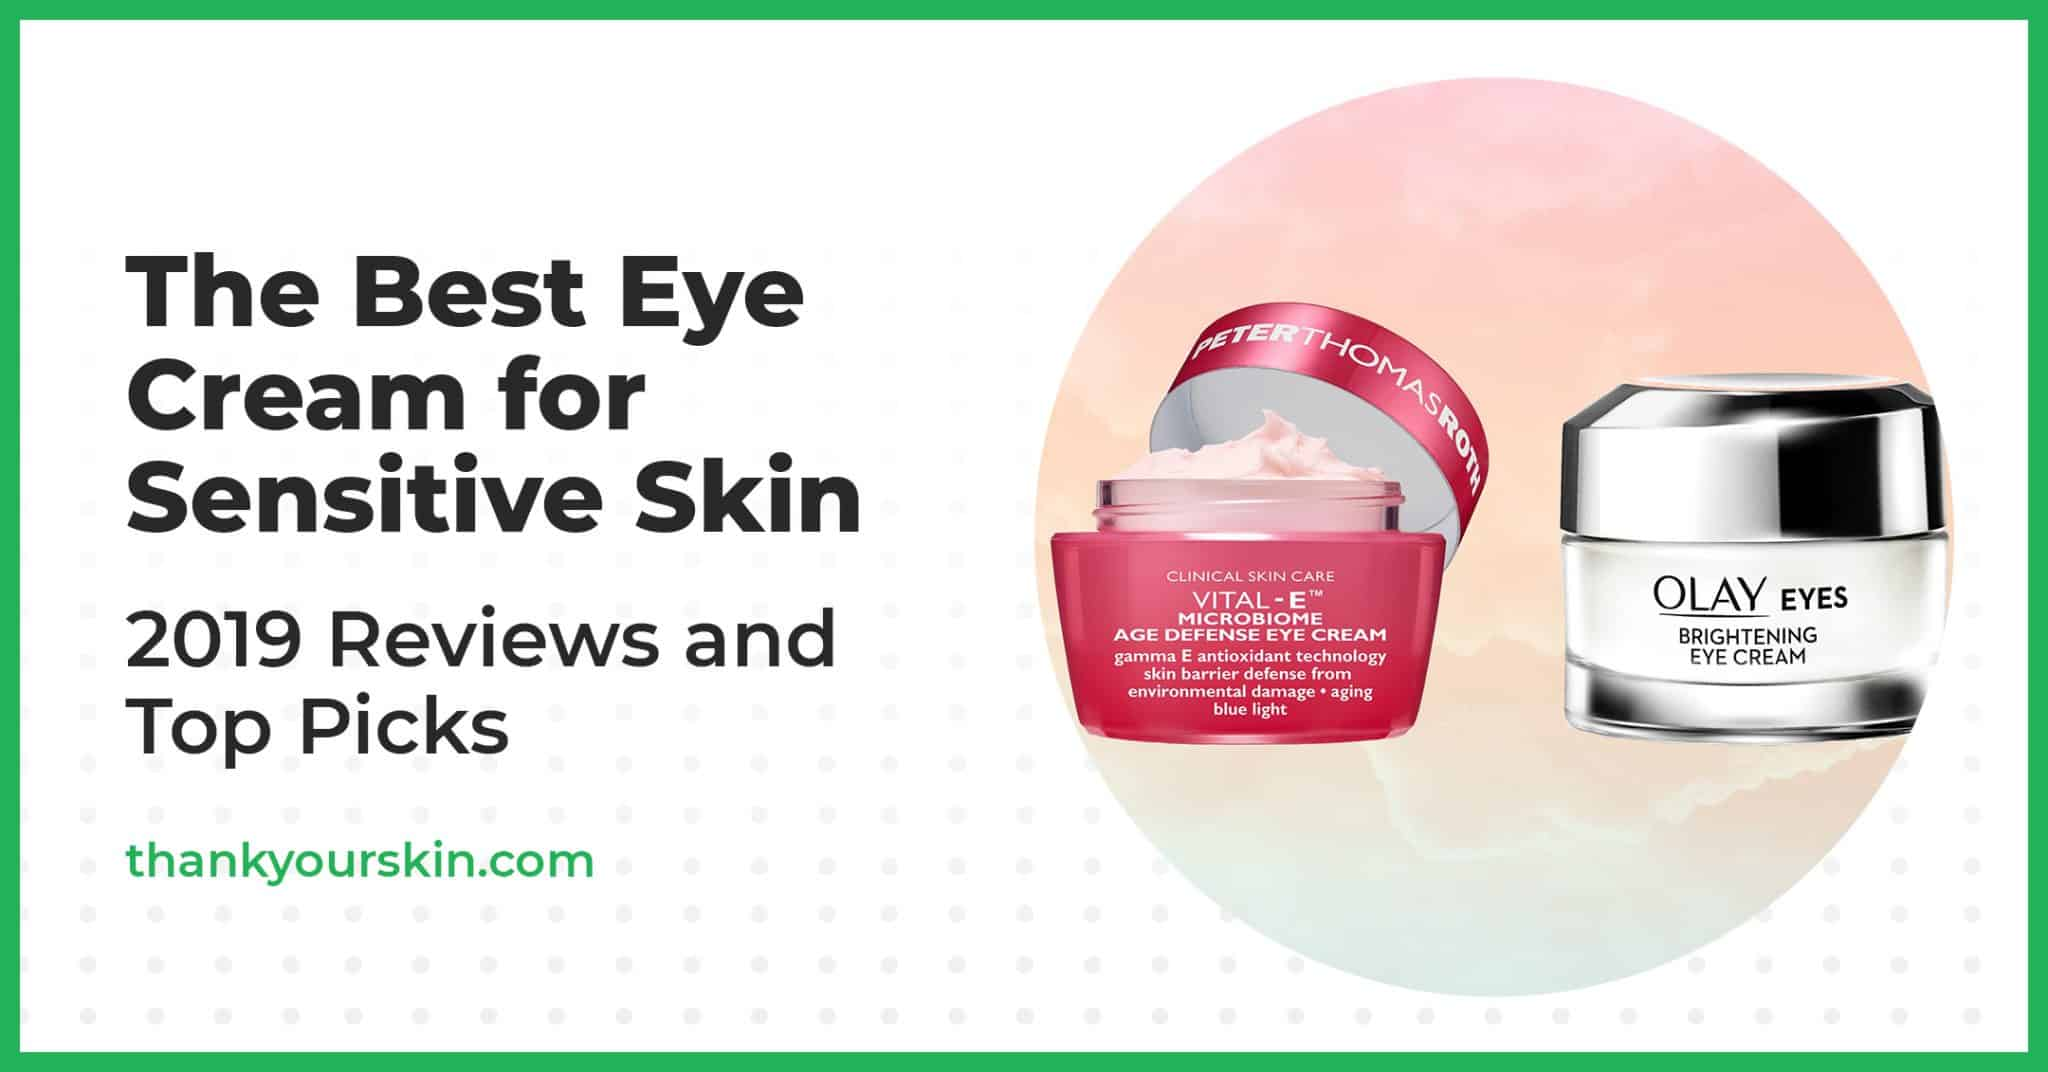 The Best Eye Cream for Sensitive Skin 2021 Reviews and Top Picks